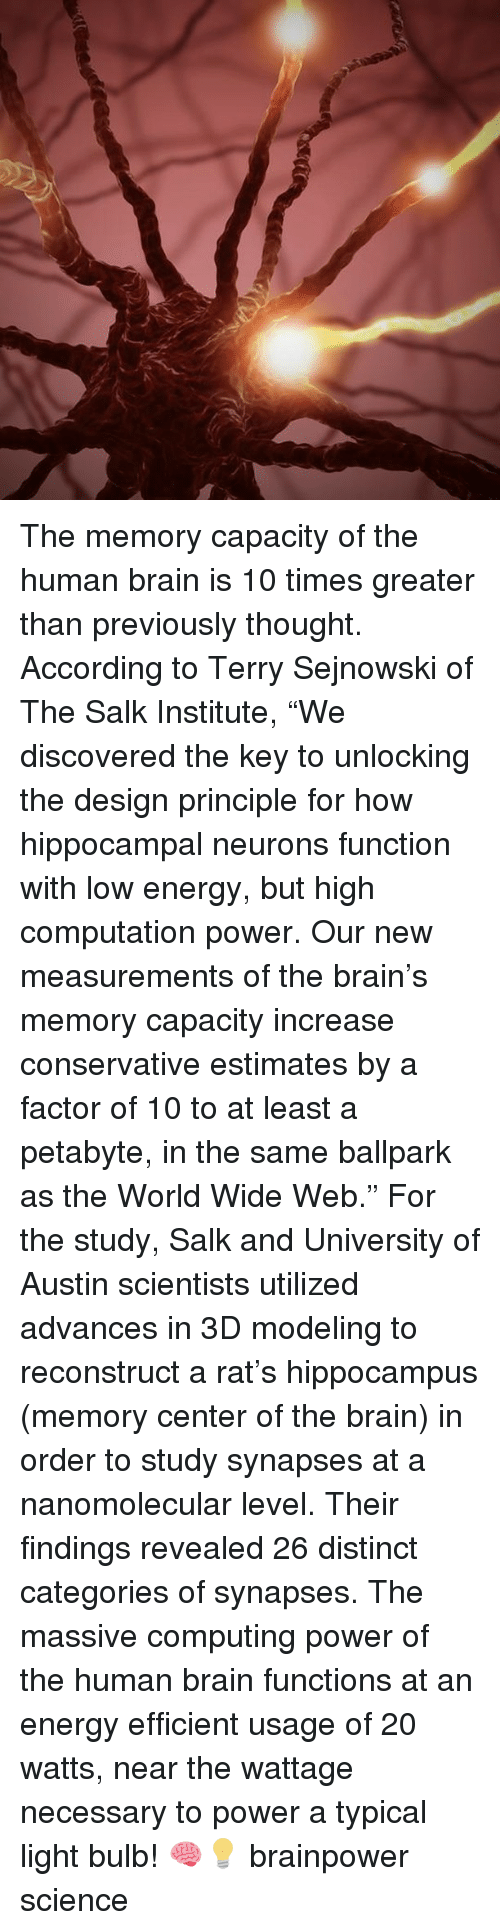 "computing: The memory capacity of the human brain is 10 times greater than previously thought. According to Terry Sejnowski of The Salk Institute, ""We discovered the key to unlocking the design principle for how hippocampal neurons function with low energy, but high computation power. Our new measurements of the brain's memory capacity increase conservative estimates by a factor of 10 to at least a petabyte, in the same ballpark as the World Wide Web."" For the study, Salk and University of Austin scientists utilized advances in 3D modeling to reconstruct a rat's hippocampus (memory center of the brain) in order to study synapses at a nanomolecular level. Their findings revealed 26 distinct categories of synapses. The massive computing power of the human brain functions at an energy efficient usage of 20 watts, near the wattage necessary to power a typical light bulb! 🧠💡 brainpower science"